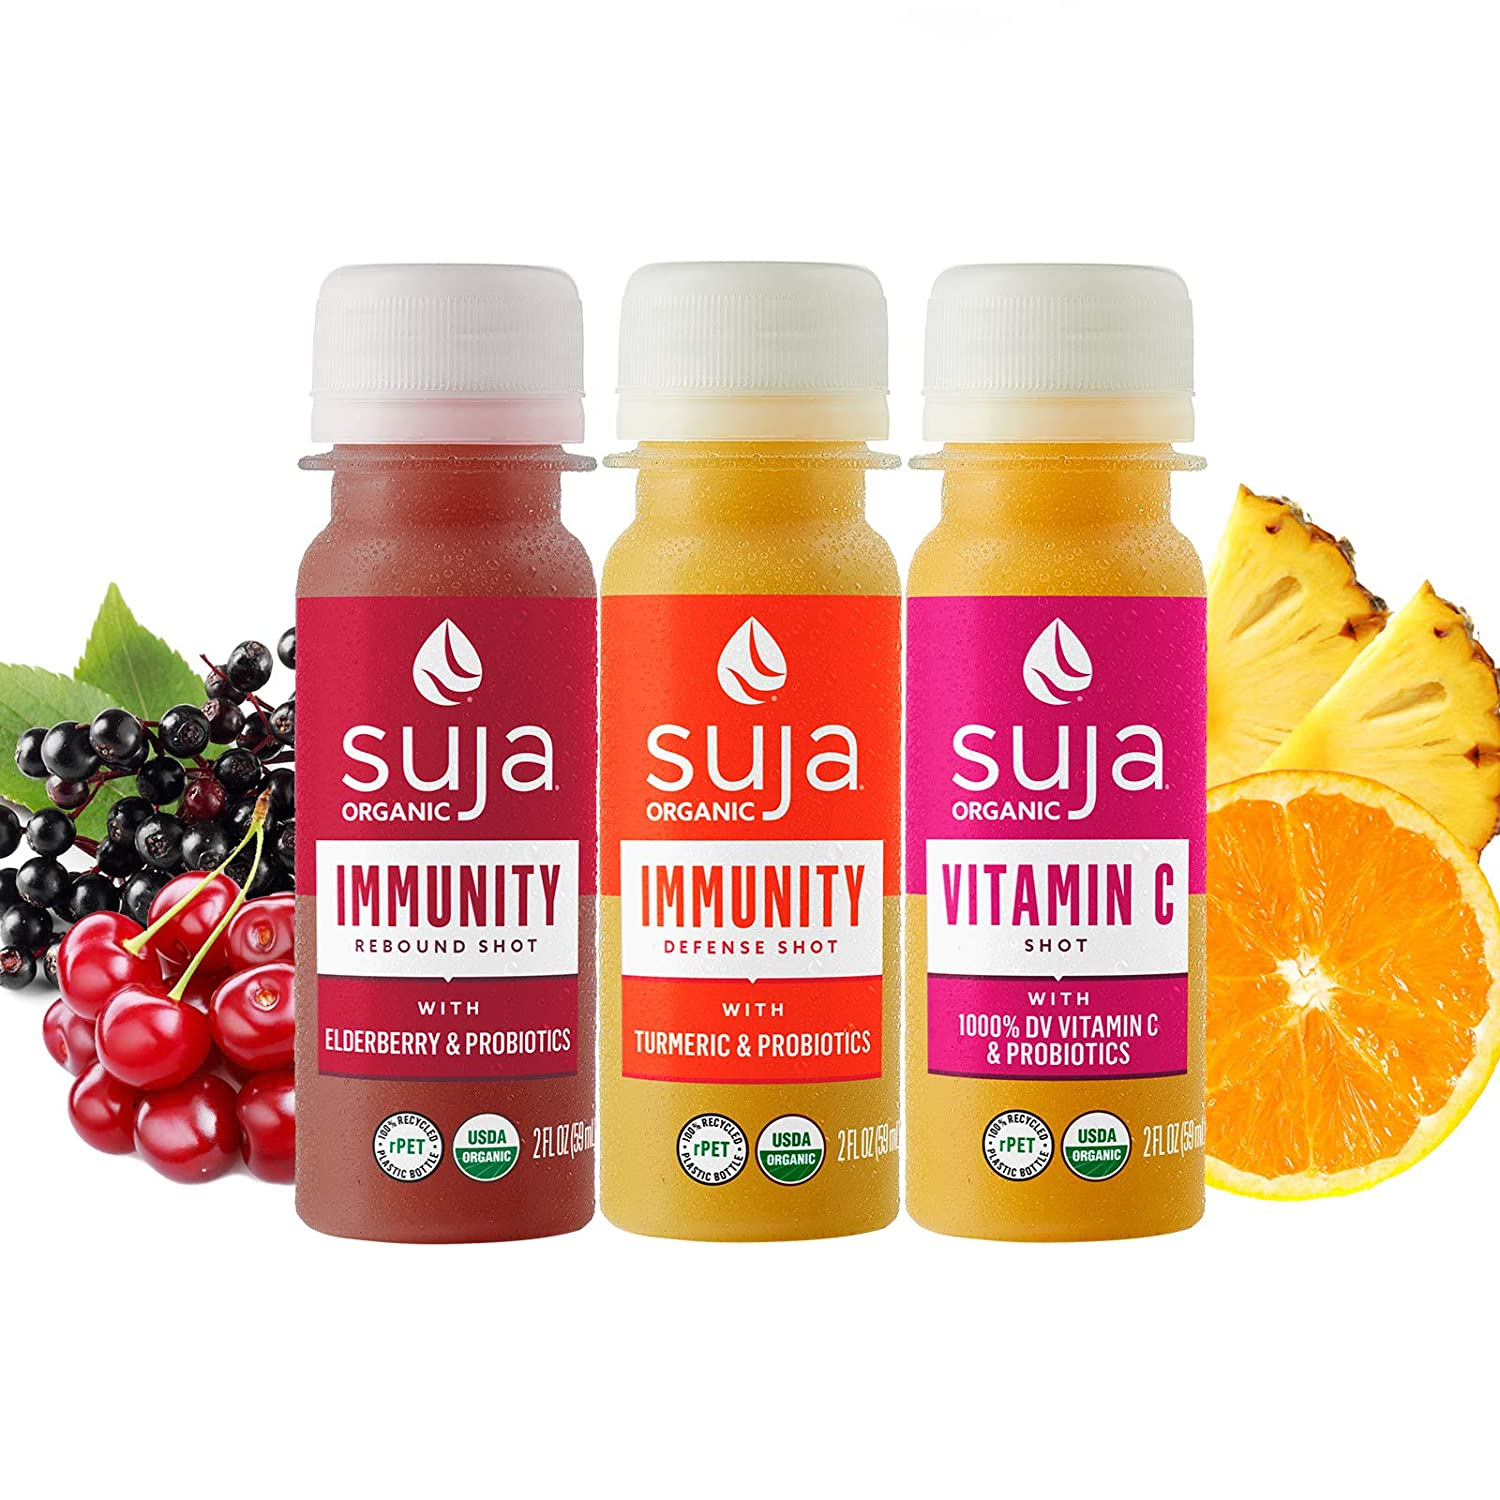 Suja Organic Cold-Pressed Immunity Boost Pack Shots Immun Popular brand in the famous world 60